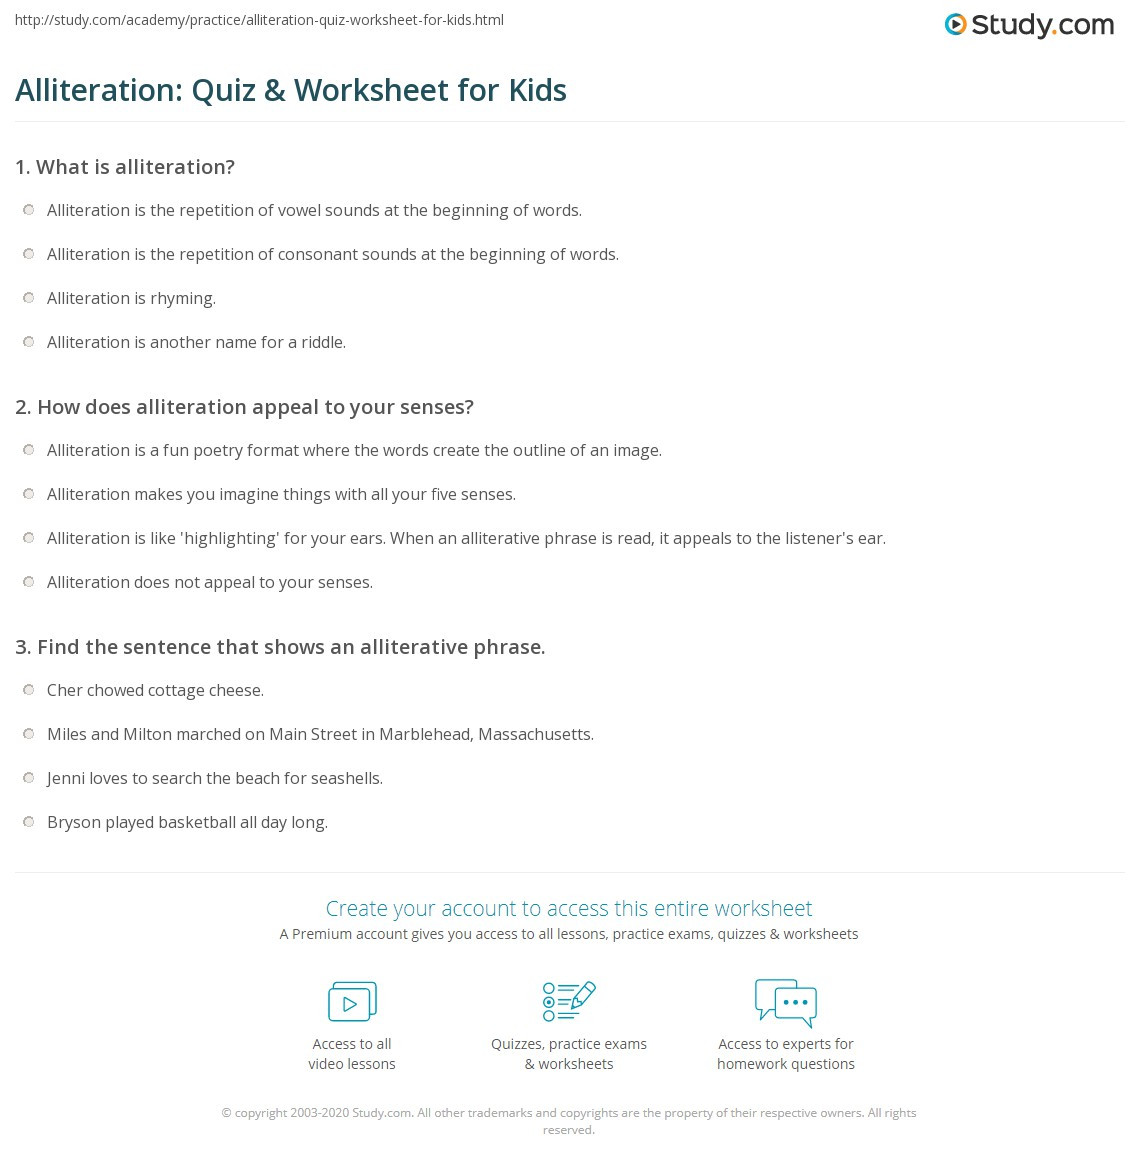 Alliteration Worksheets for Middle School Alliteration Quiz & Worksheet for Kids